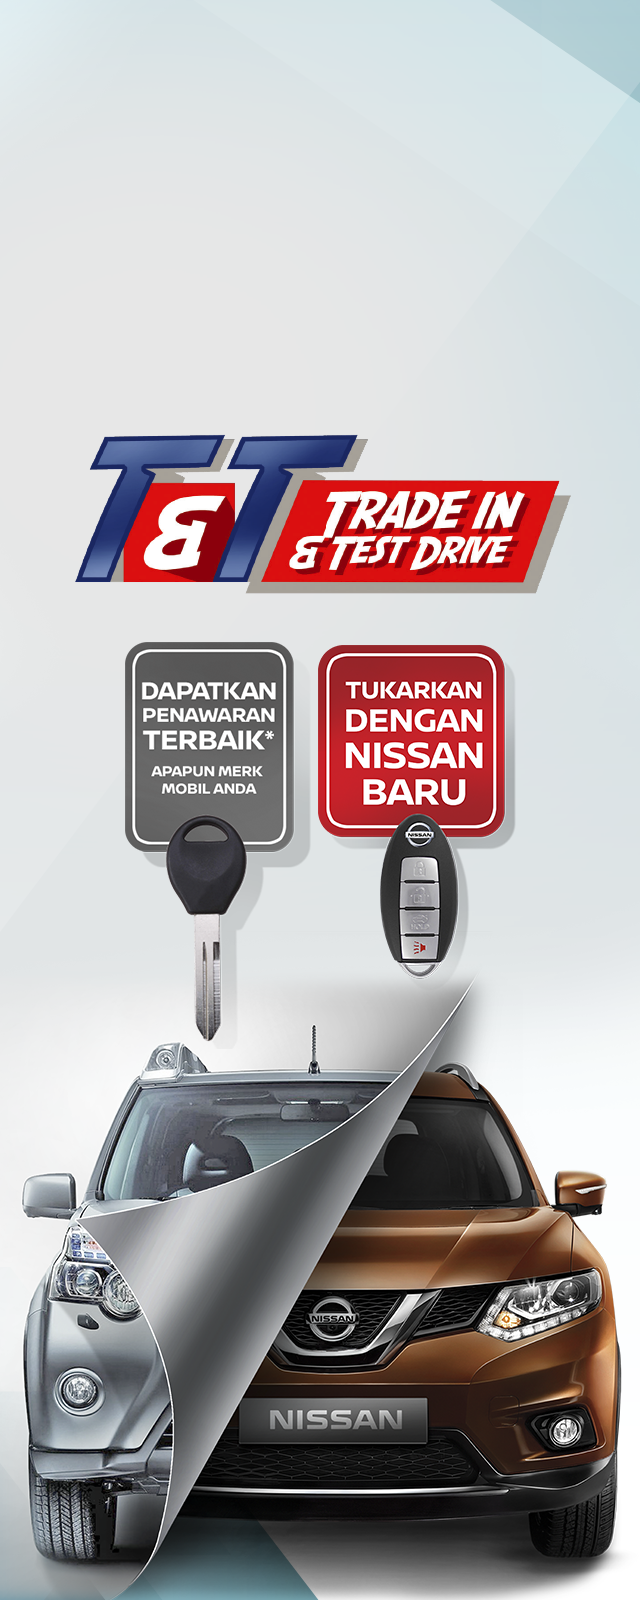 nissan trade in & test drive 2016